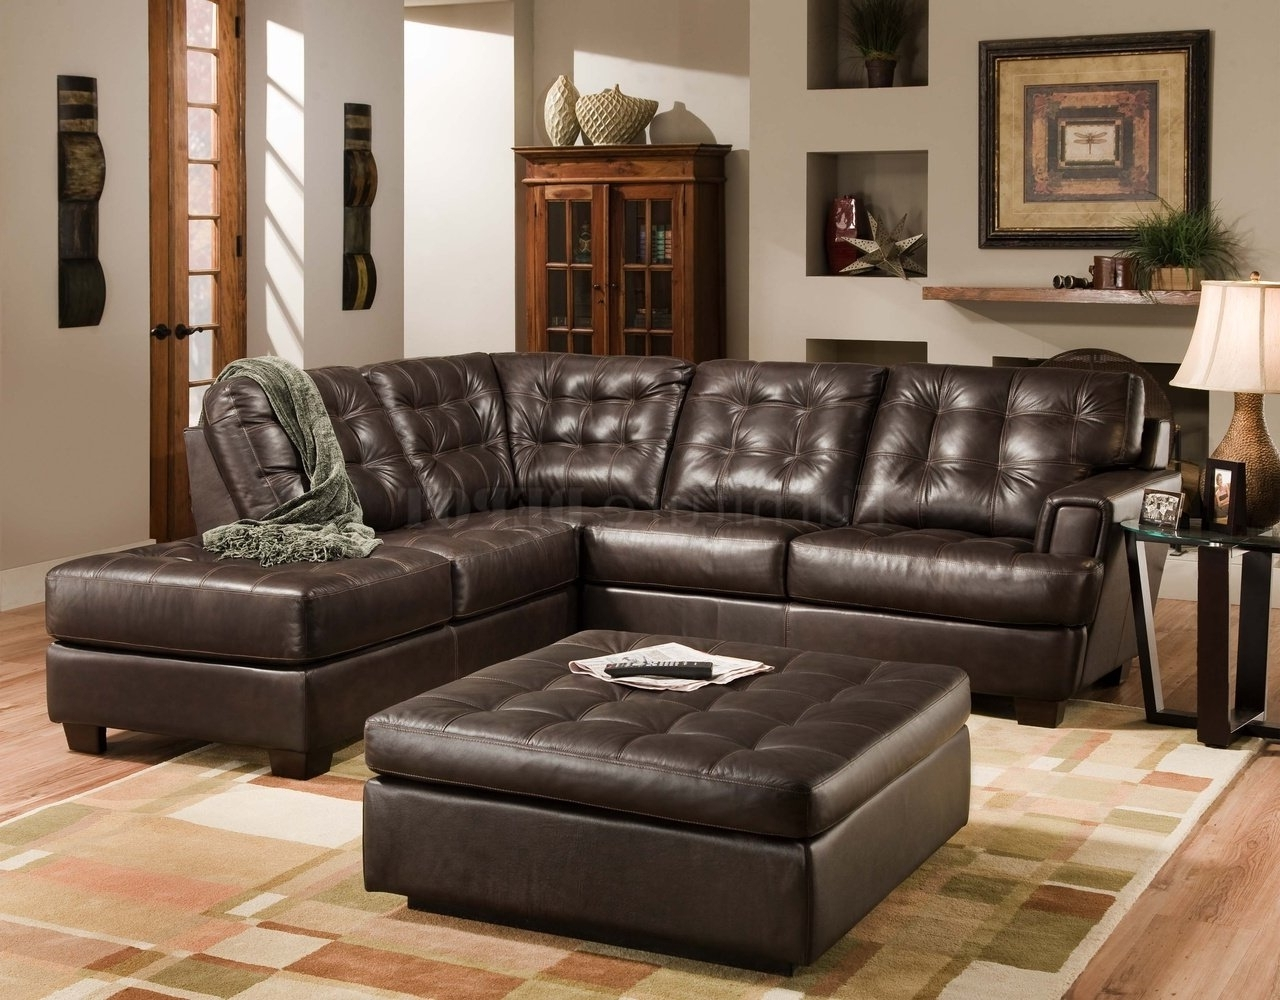 2017 Double Chaise Loveseat Leather Loveseat With Chaise Large Within Brown Sectionals With Chaise (View 9 of 15)